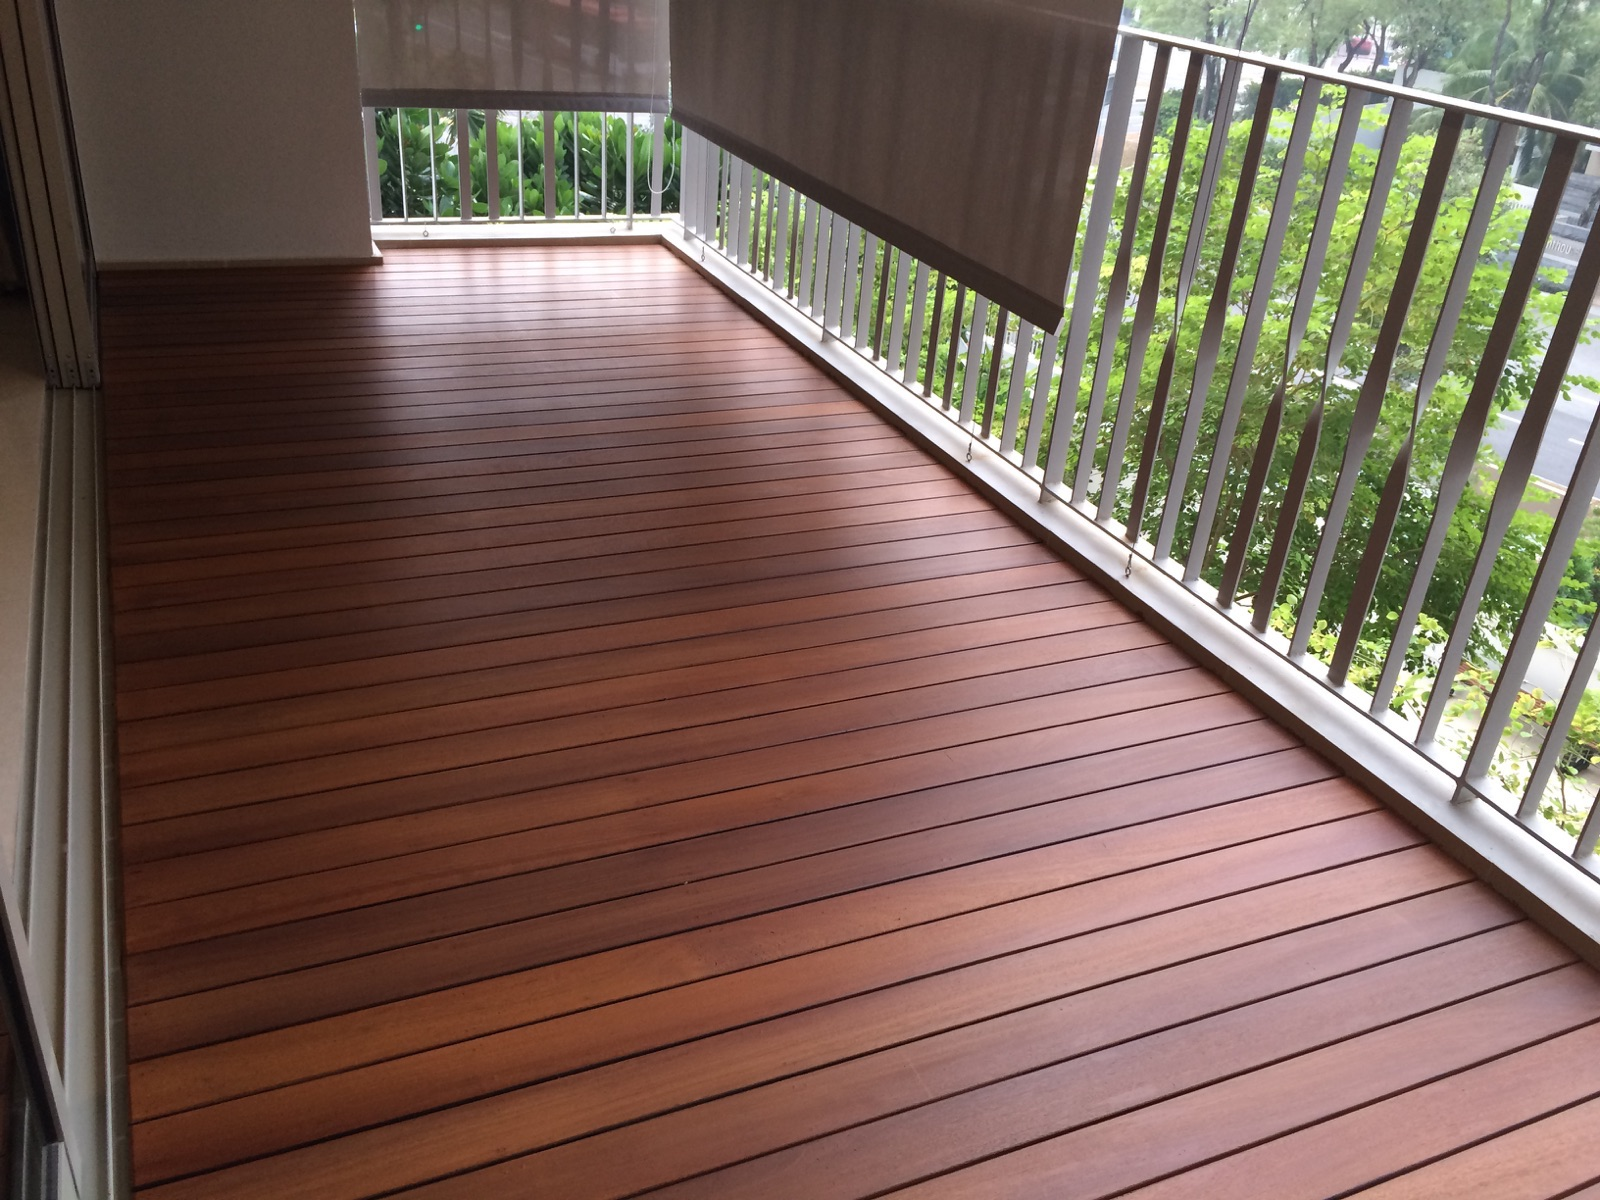 Balcony decking in singapore tips on picking your material for What is the best wood for decking